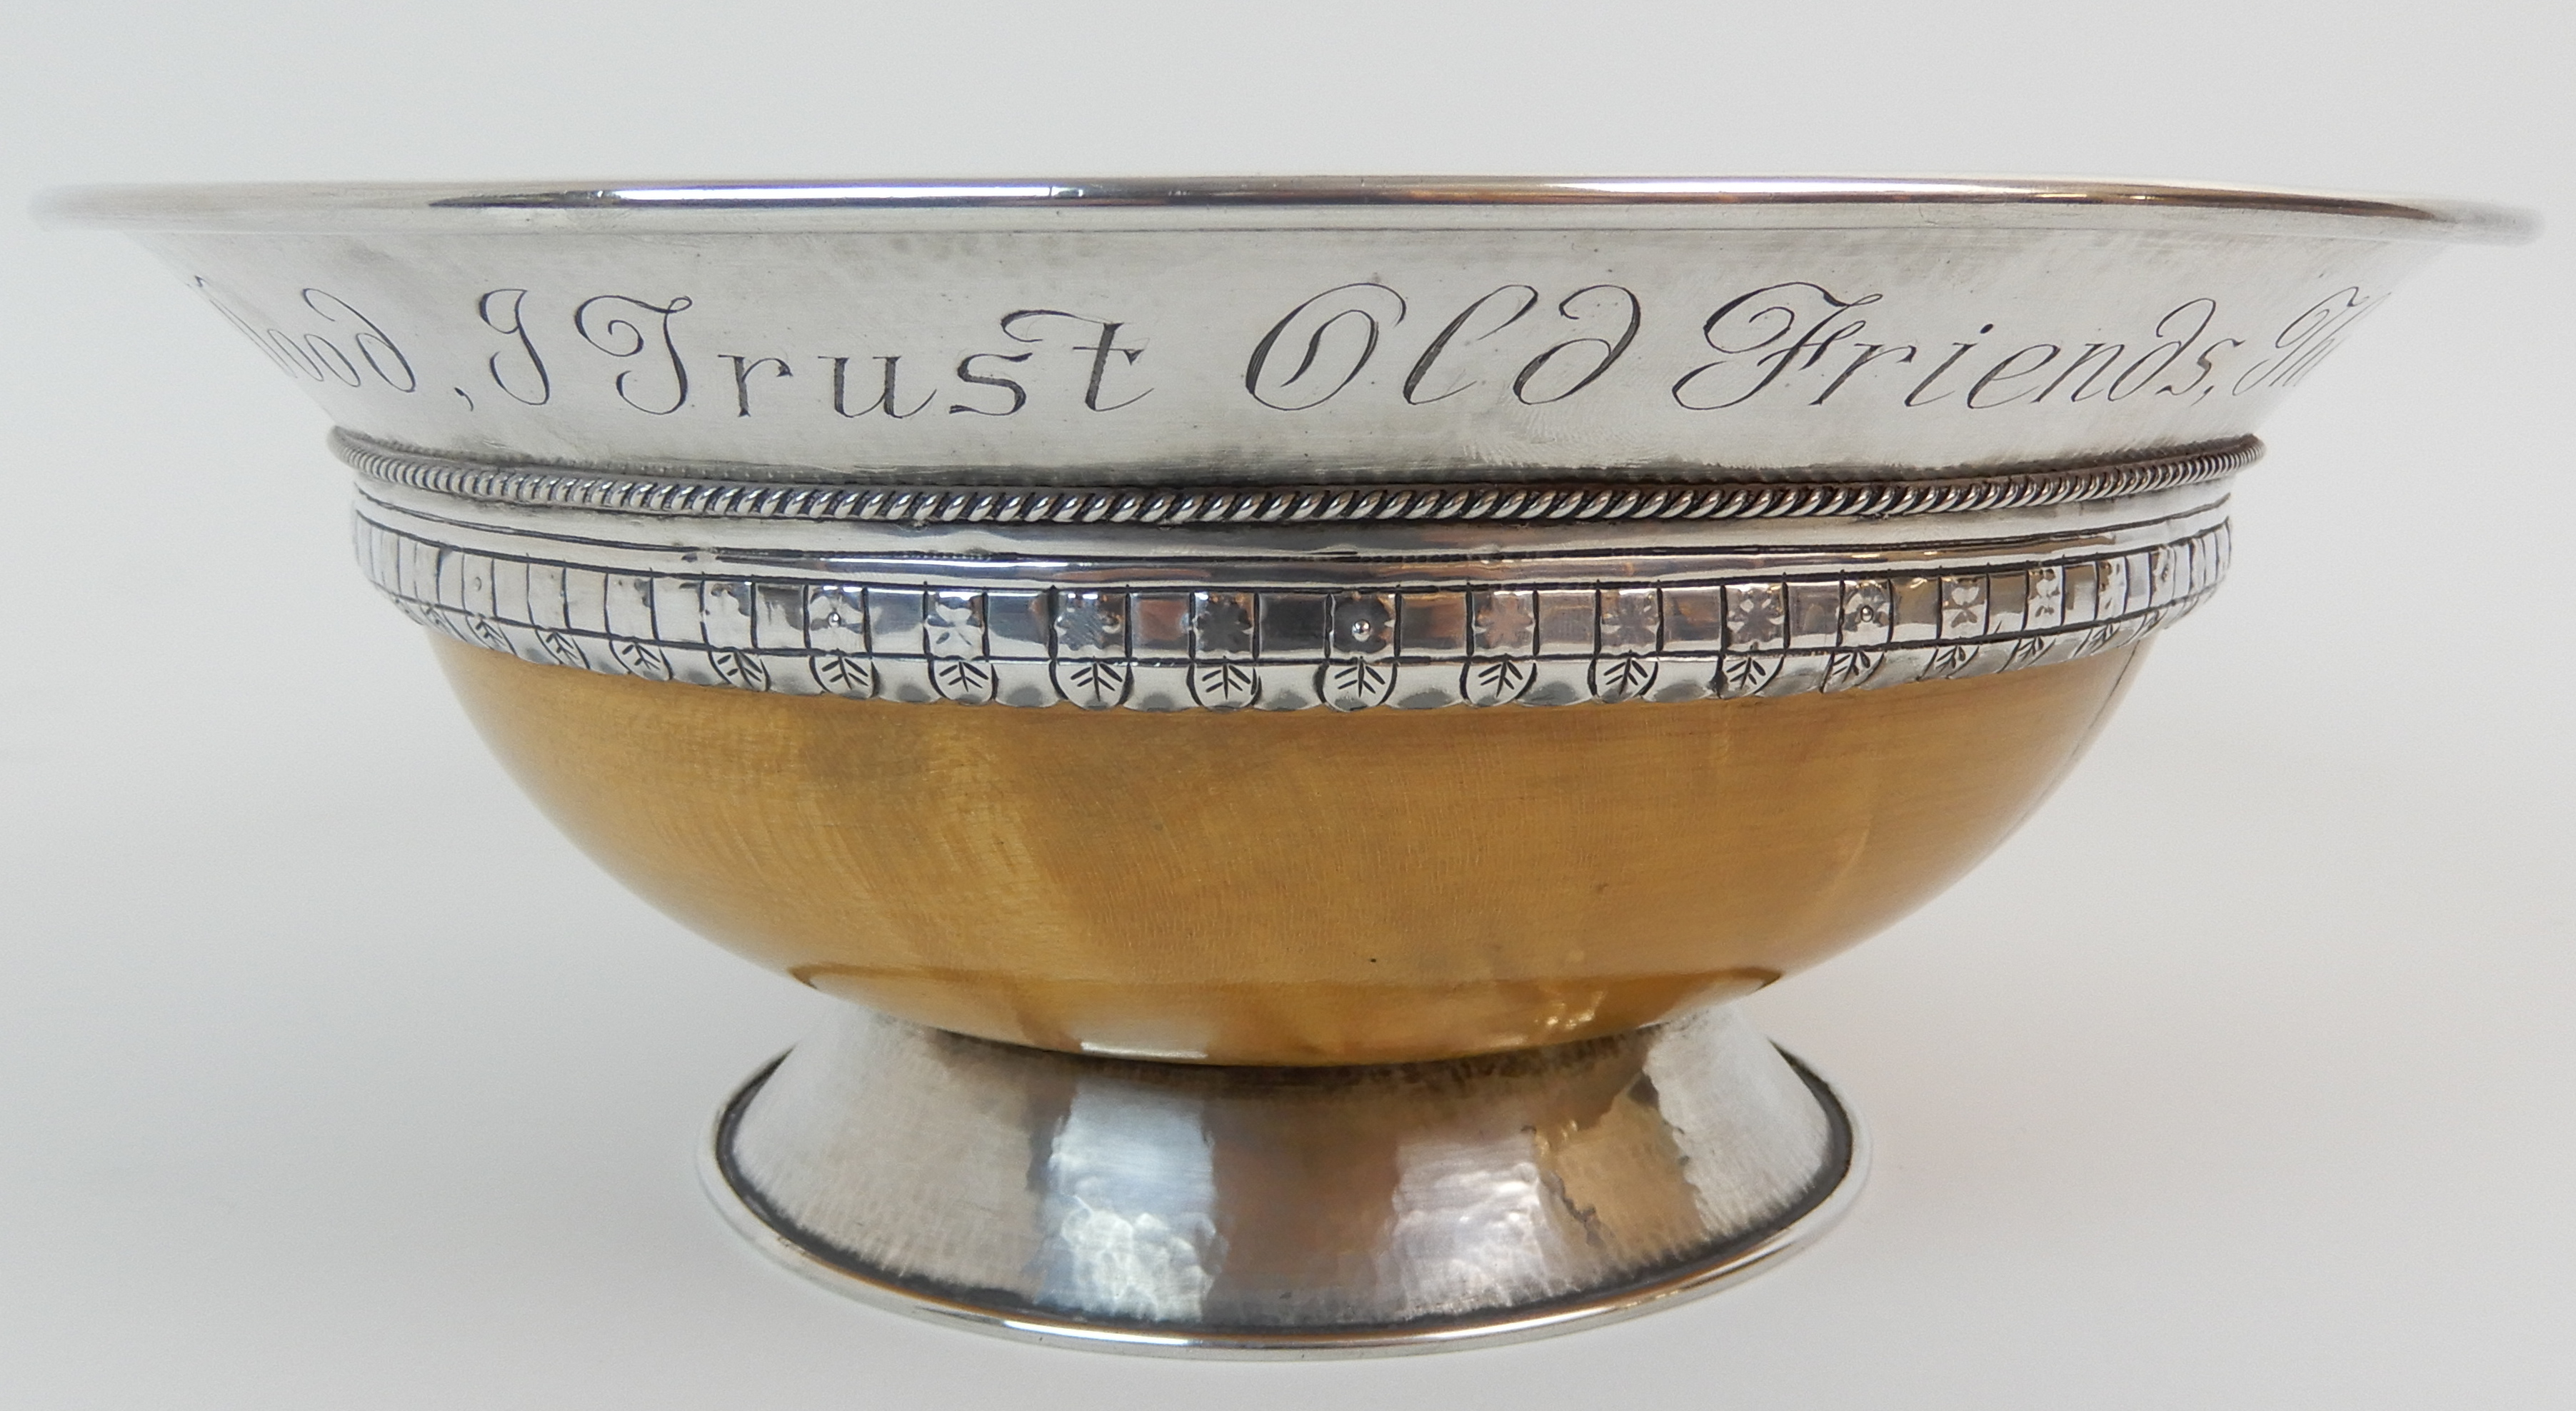 AN ARTS AND CRAFTS SILVER MOUNTED TREEN BOWL by Elizabeth Henry Kirkwood, Edinburgh 1947, or - Image 3 of 9